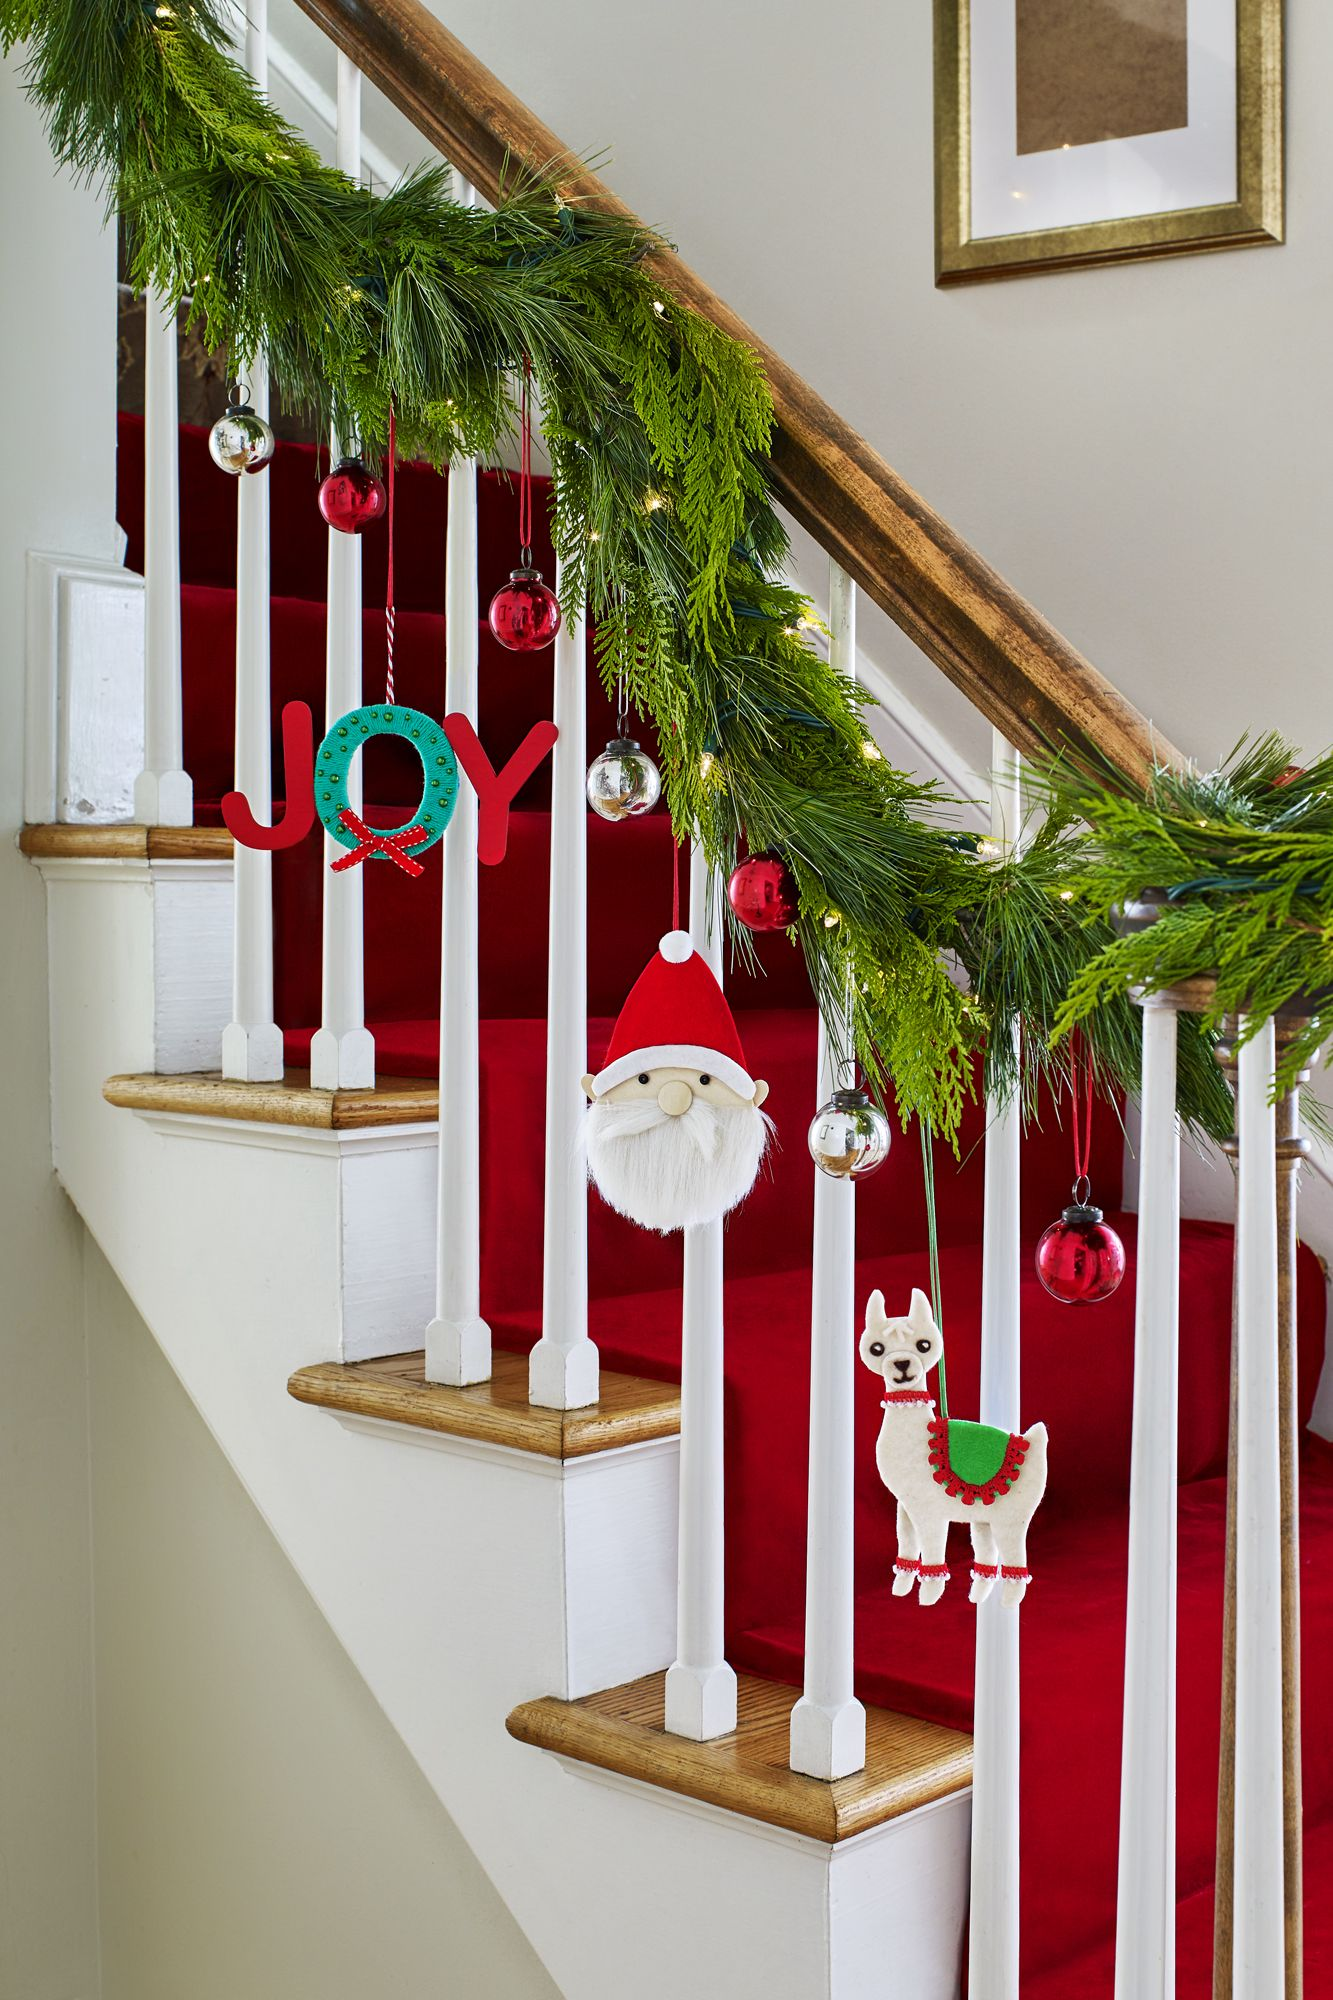 55 easy diy christmas decorations homemade ideas for holiday decorating - How To Decorate House For Christmas